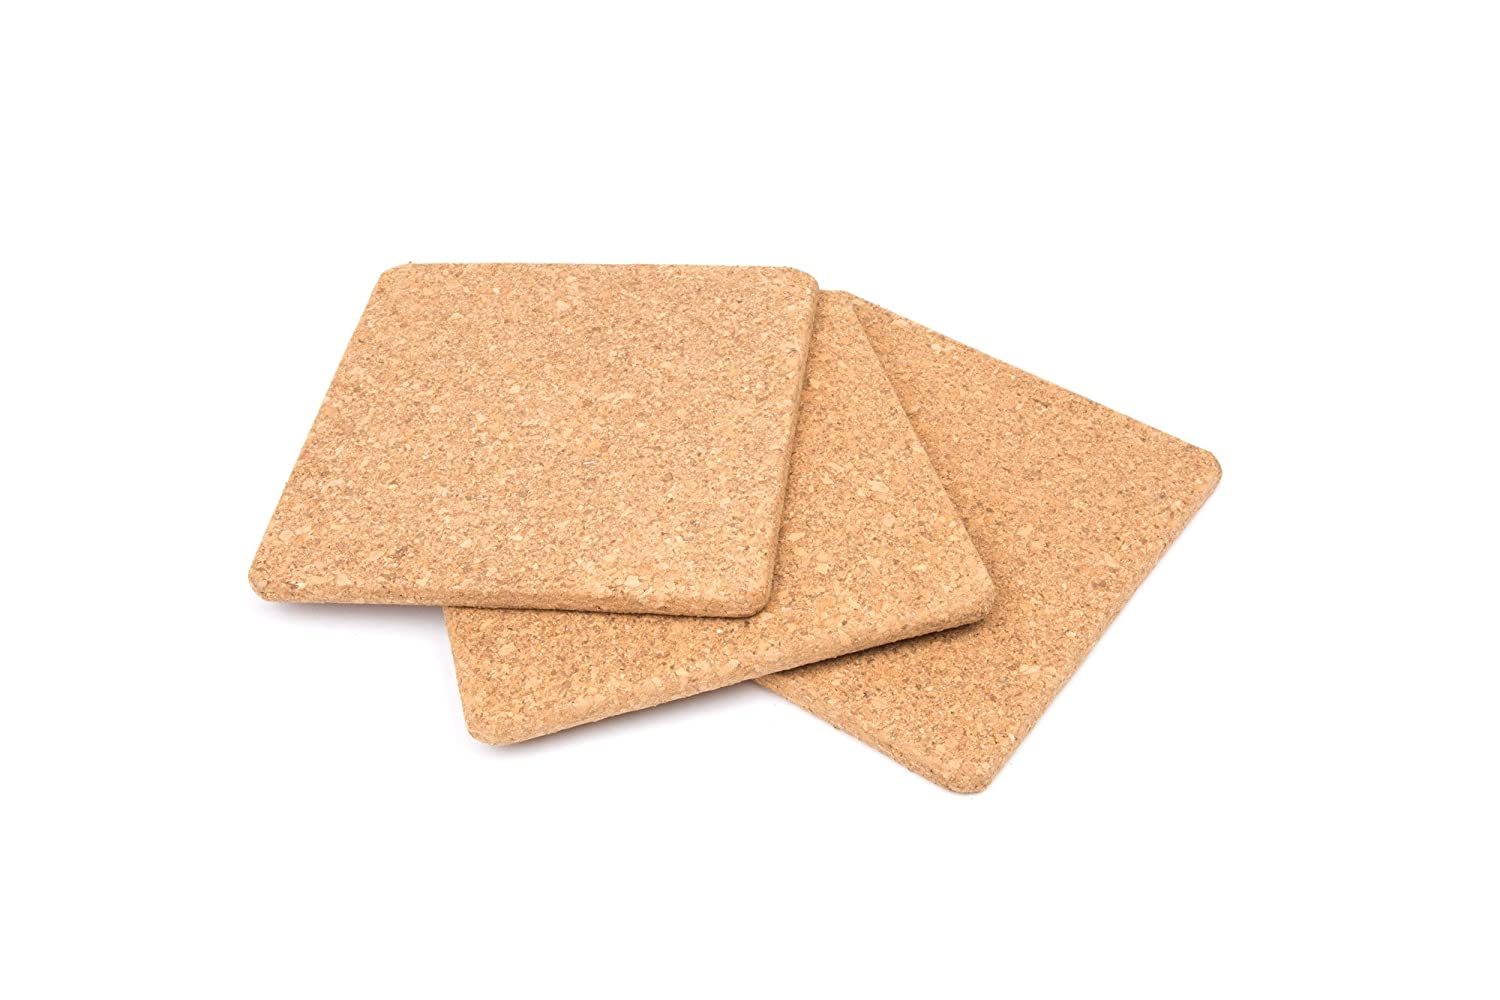 Fox Run 4441 Square Cork Trivets, 7-Inch, Set of 3